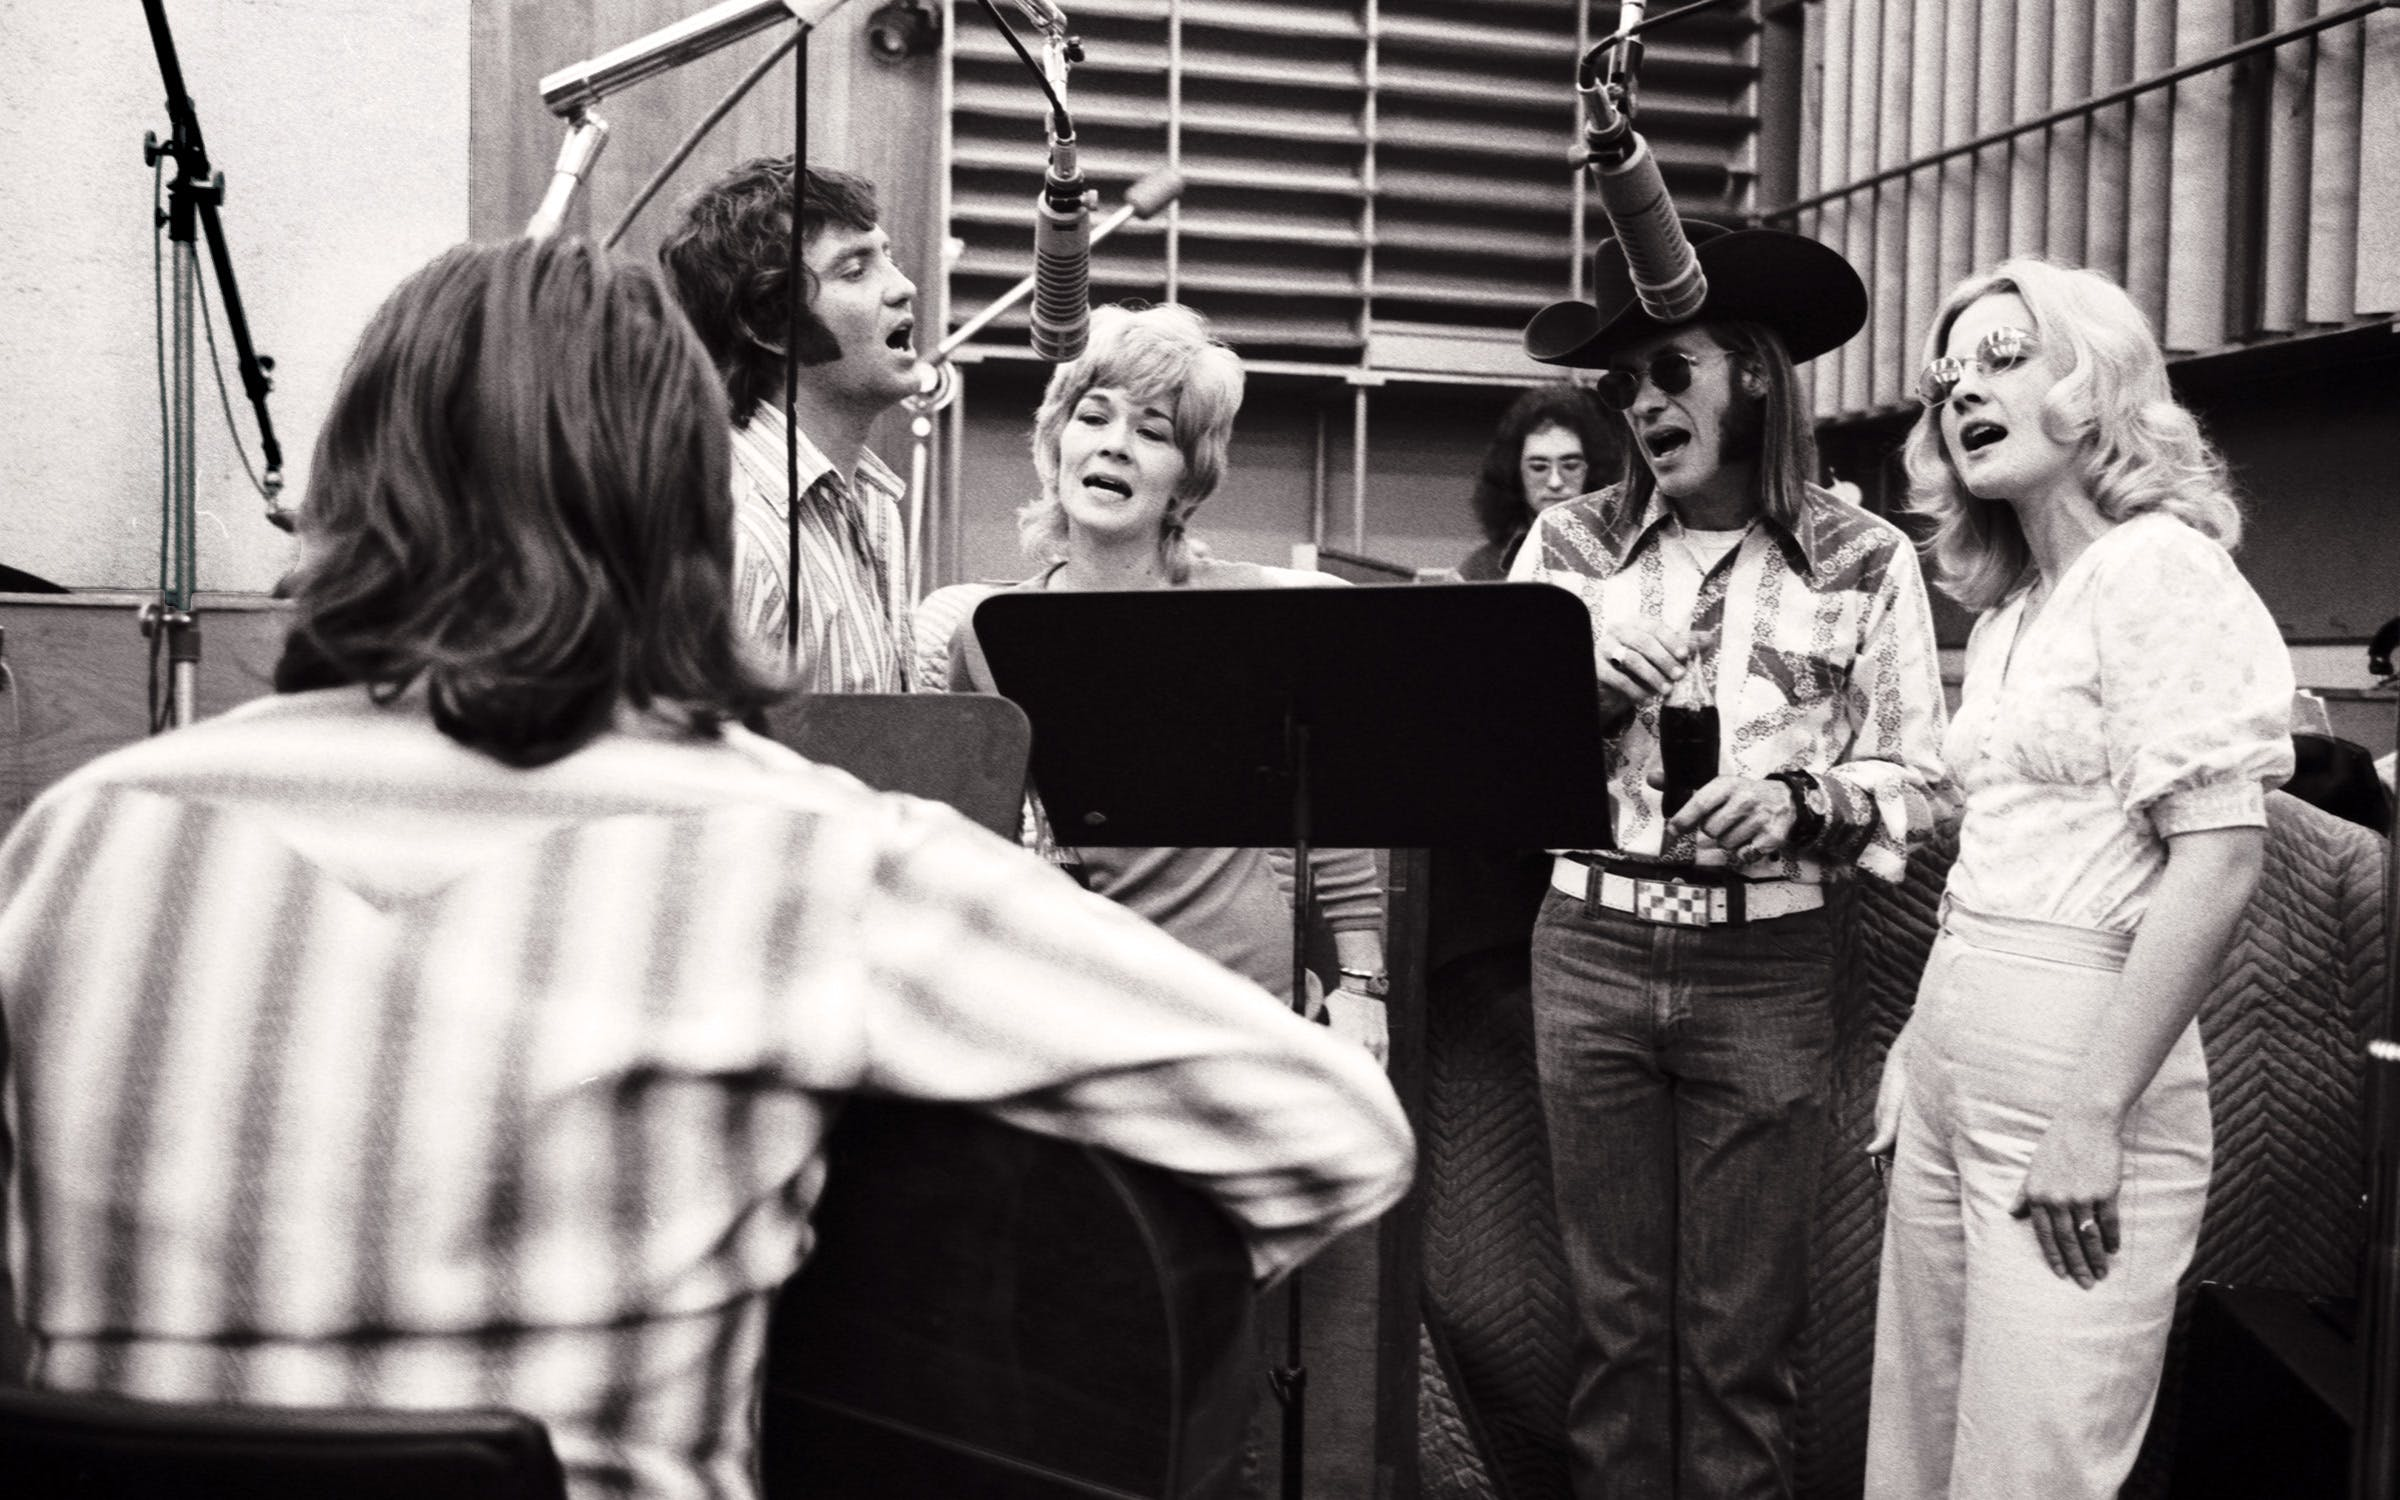 Willie in a recording session with backing vocalists Larry Gatlin, Sammi Smith, Doug Sahm, and Dee Moeller in New York City in February 1973.